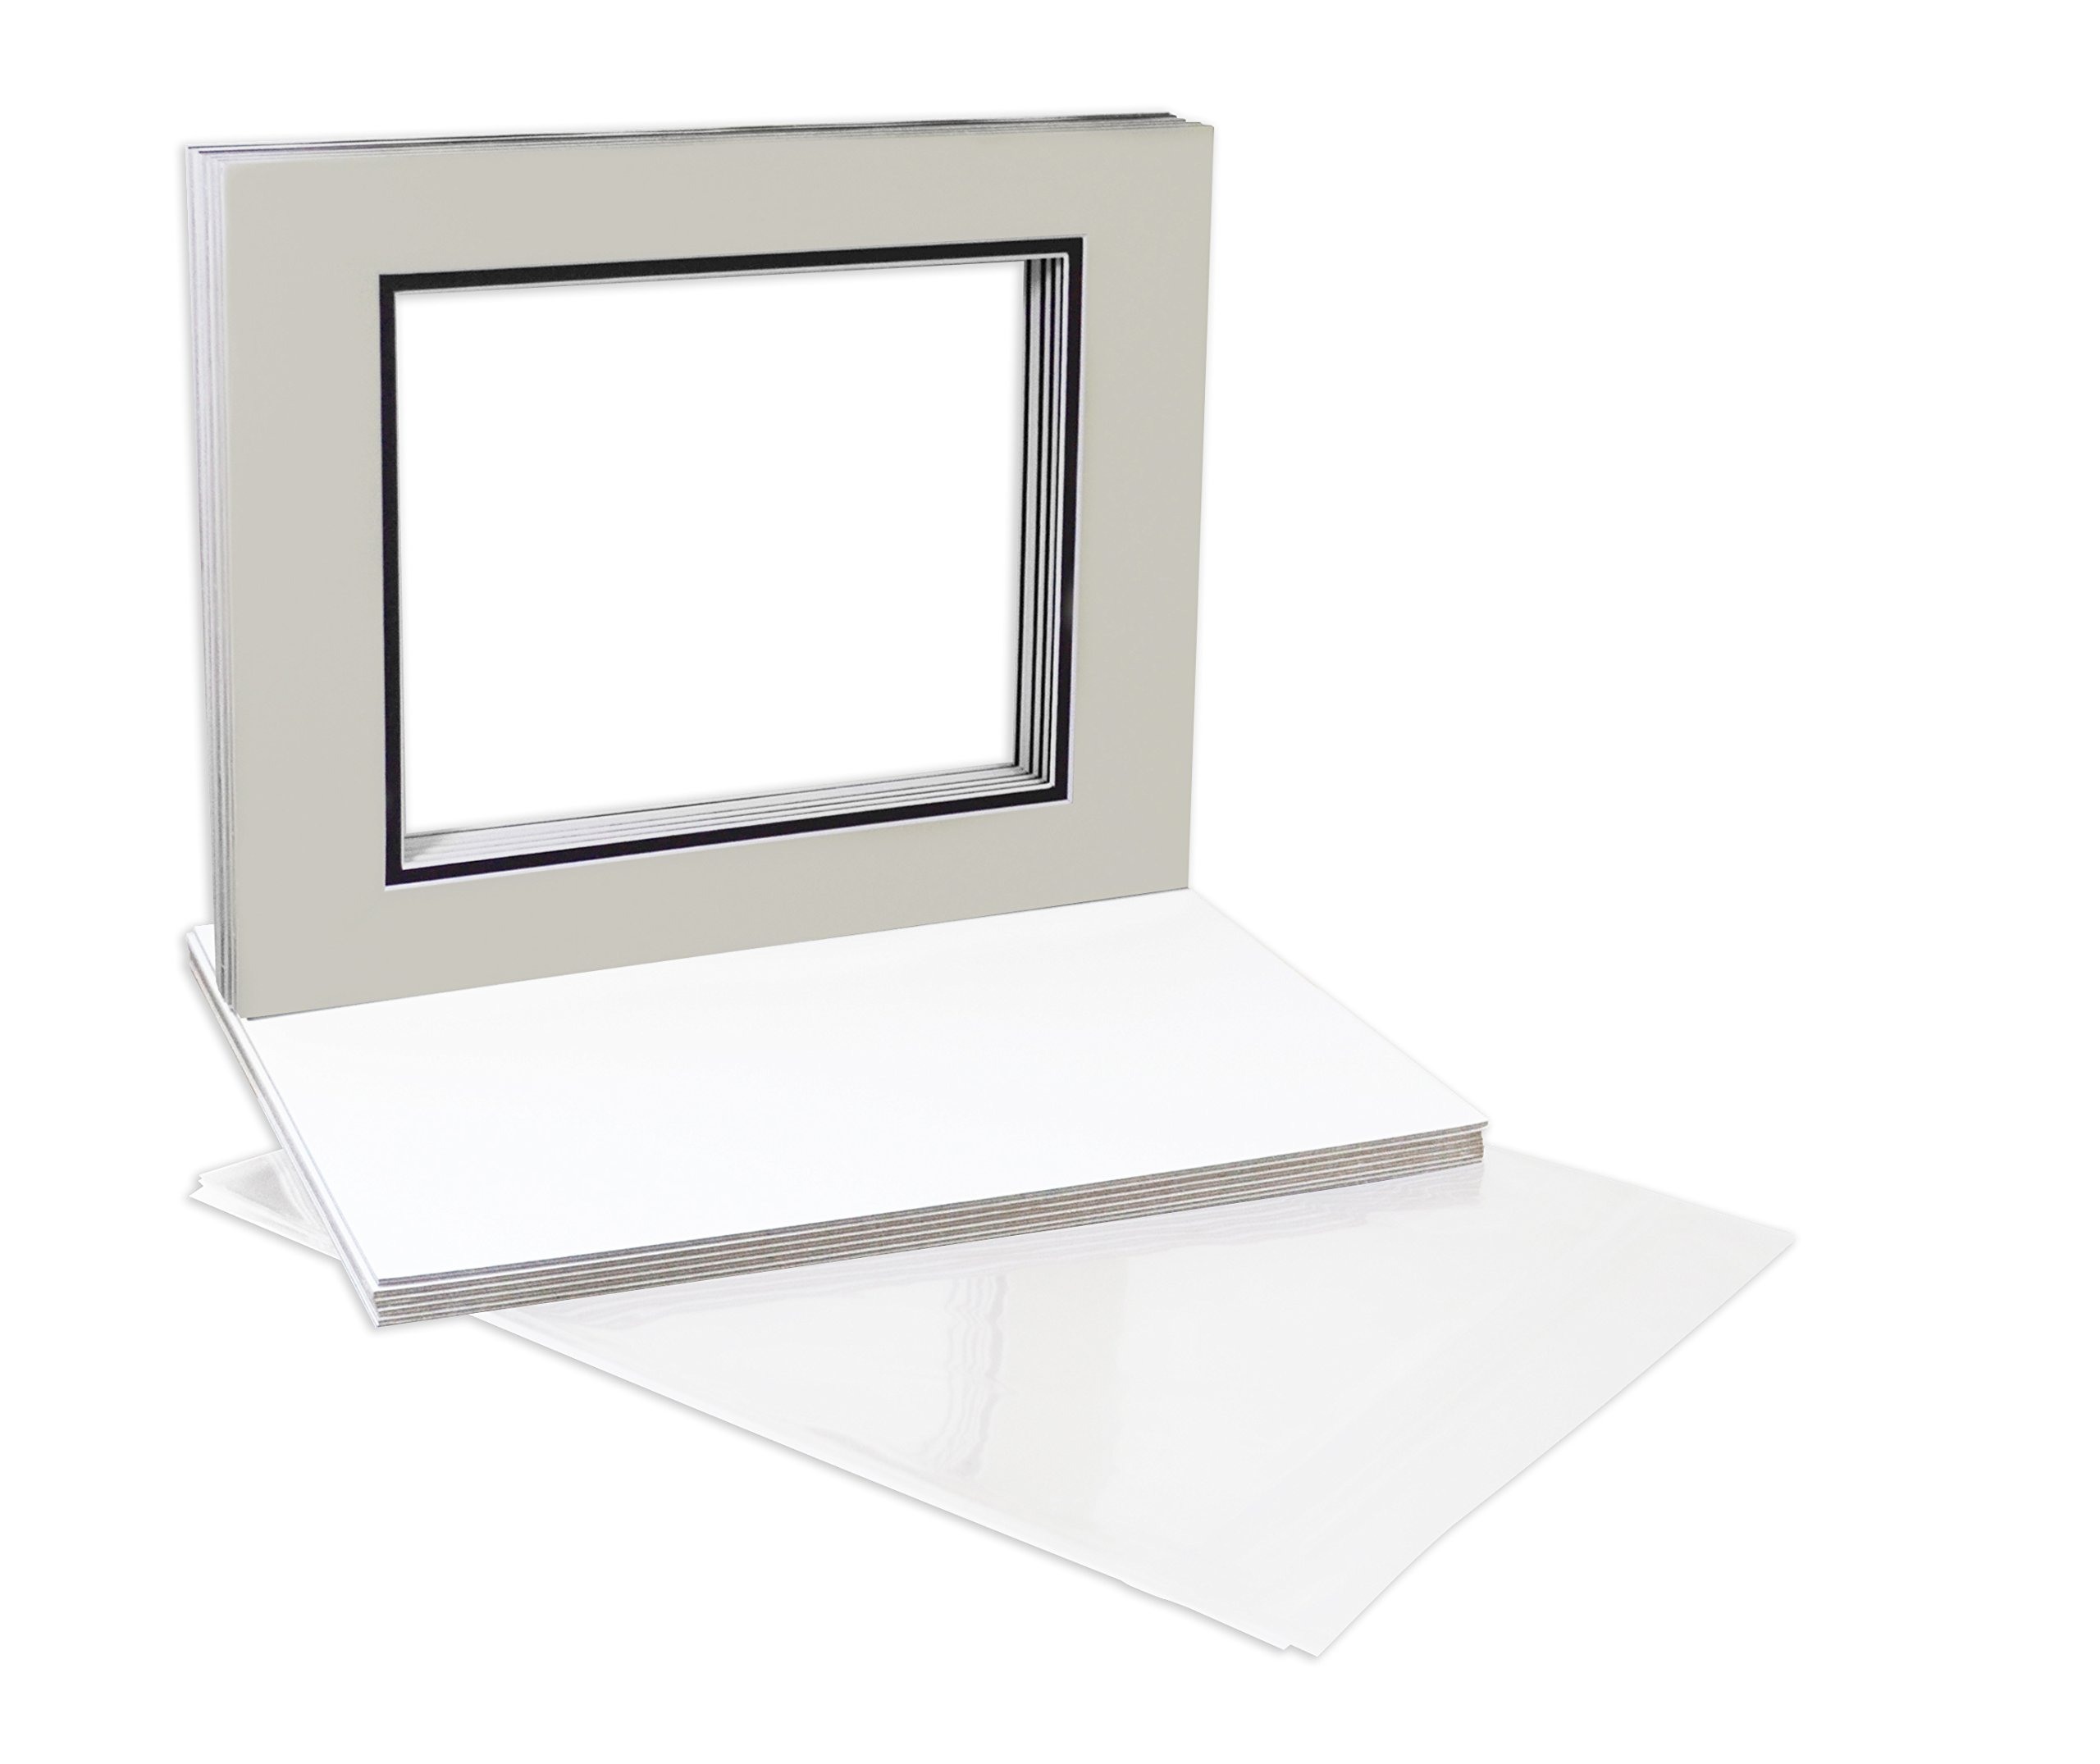 Golden State Art, Double Picture Mats with White Core Bevel Cut for 8X10 Photo Pictures (Mats, Backing, Clear Bags Included), Light Gray Over Black, 11x14-10 Pack (Double Mat) by Golden State Art